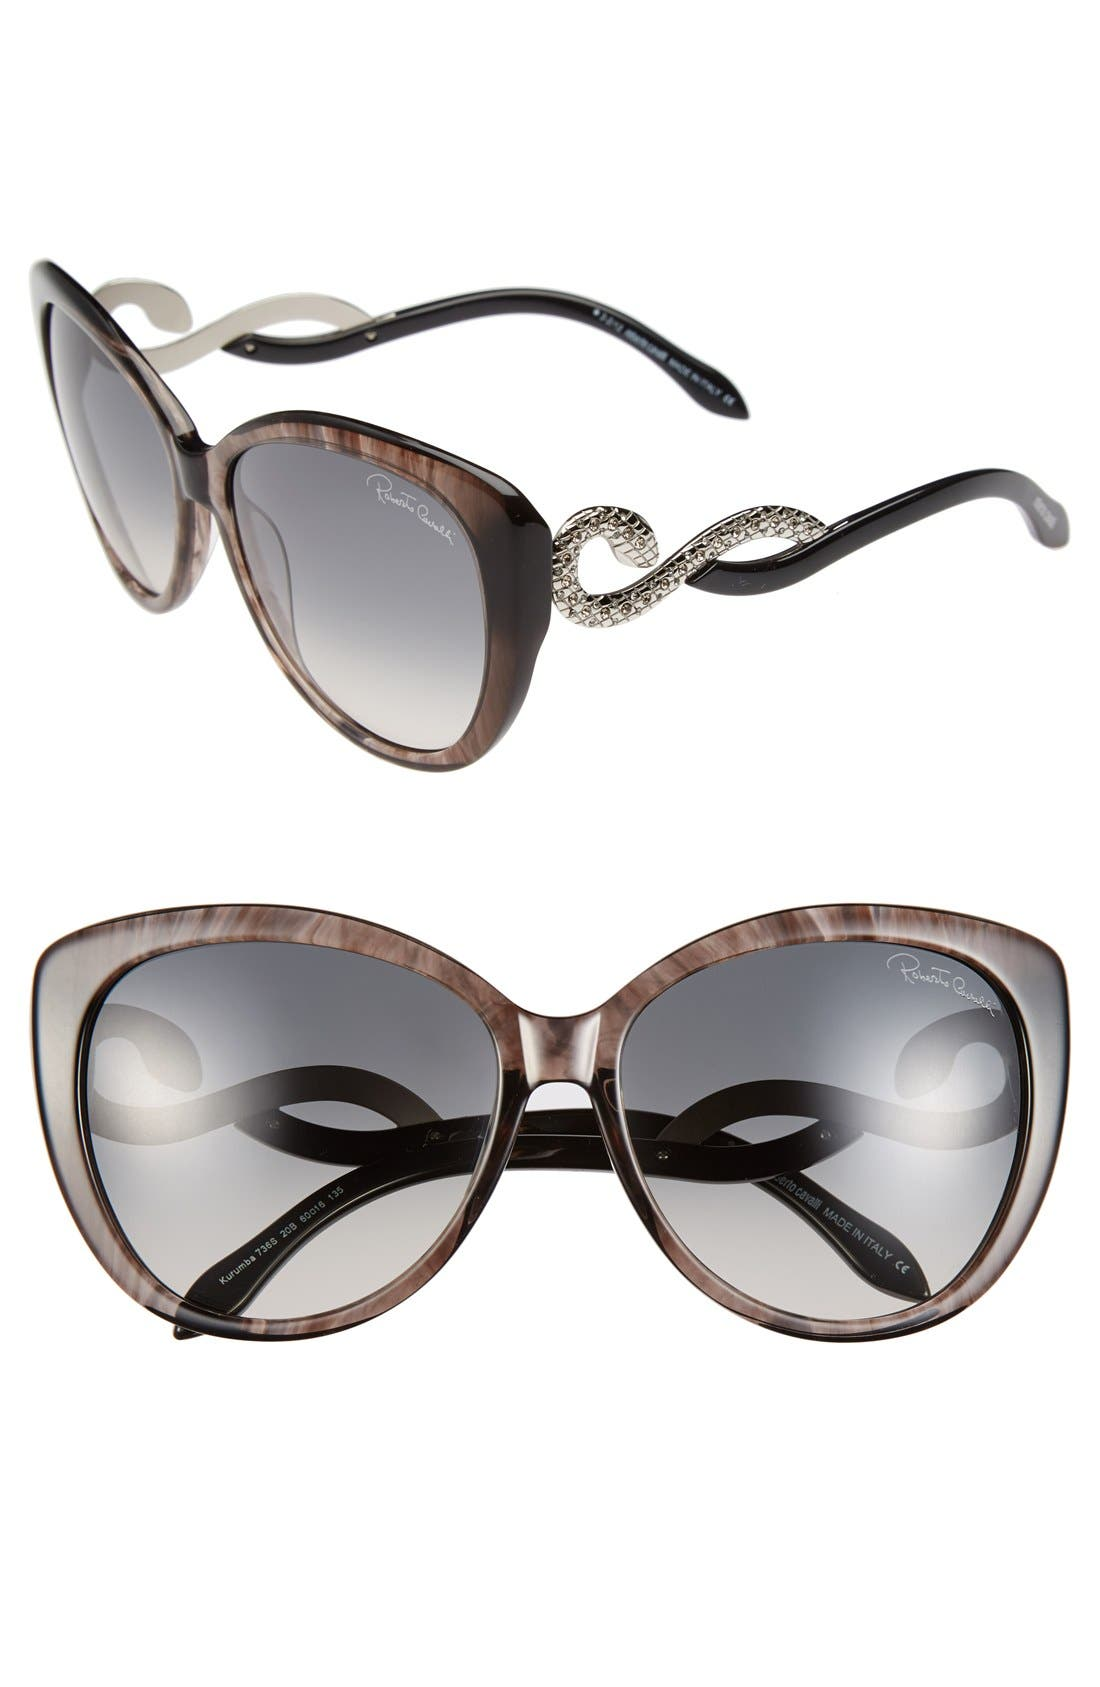 Alternate Image 1 Selected - Roberto Cavalli 'Kurumba' 60mm Oversized Sunglasses